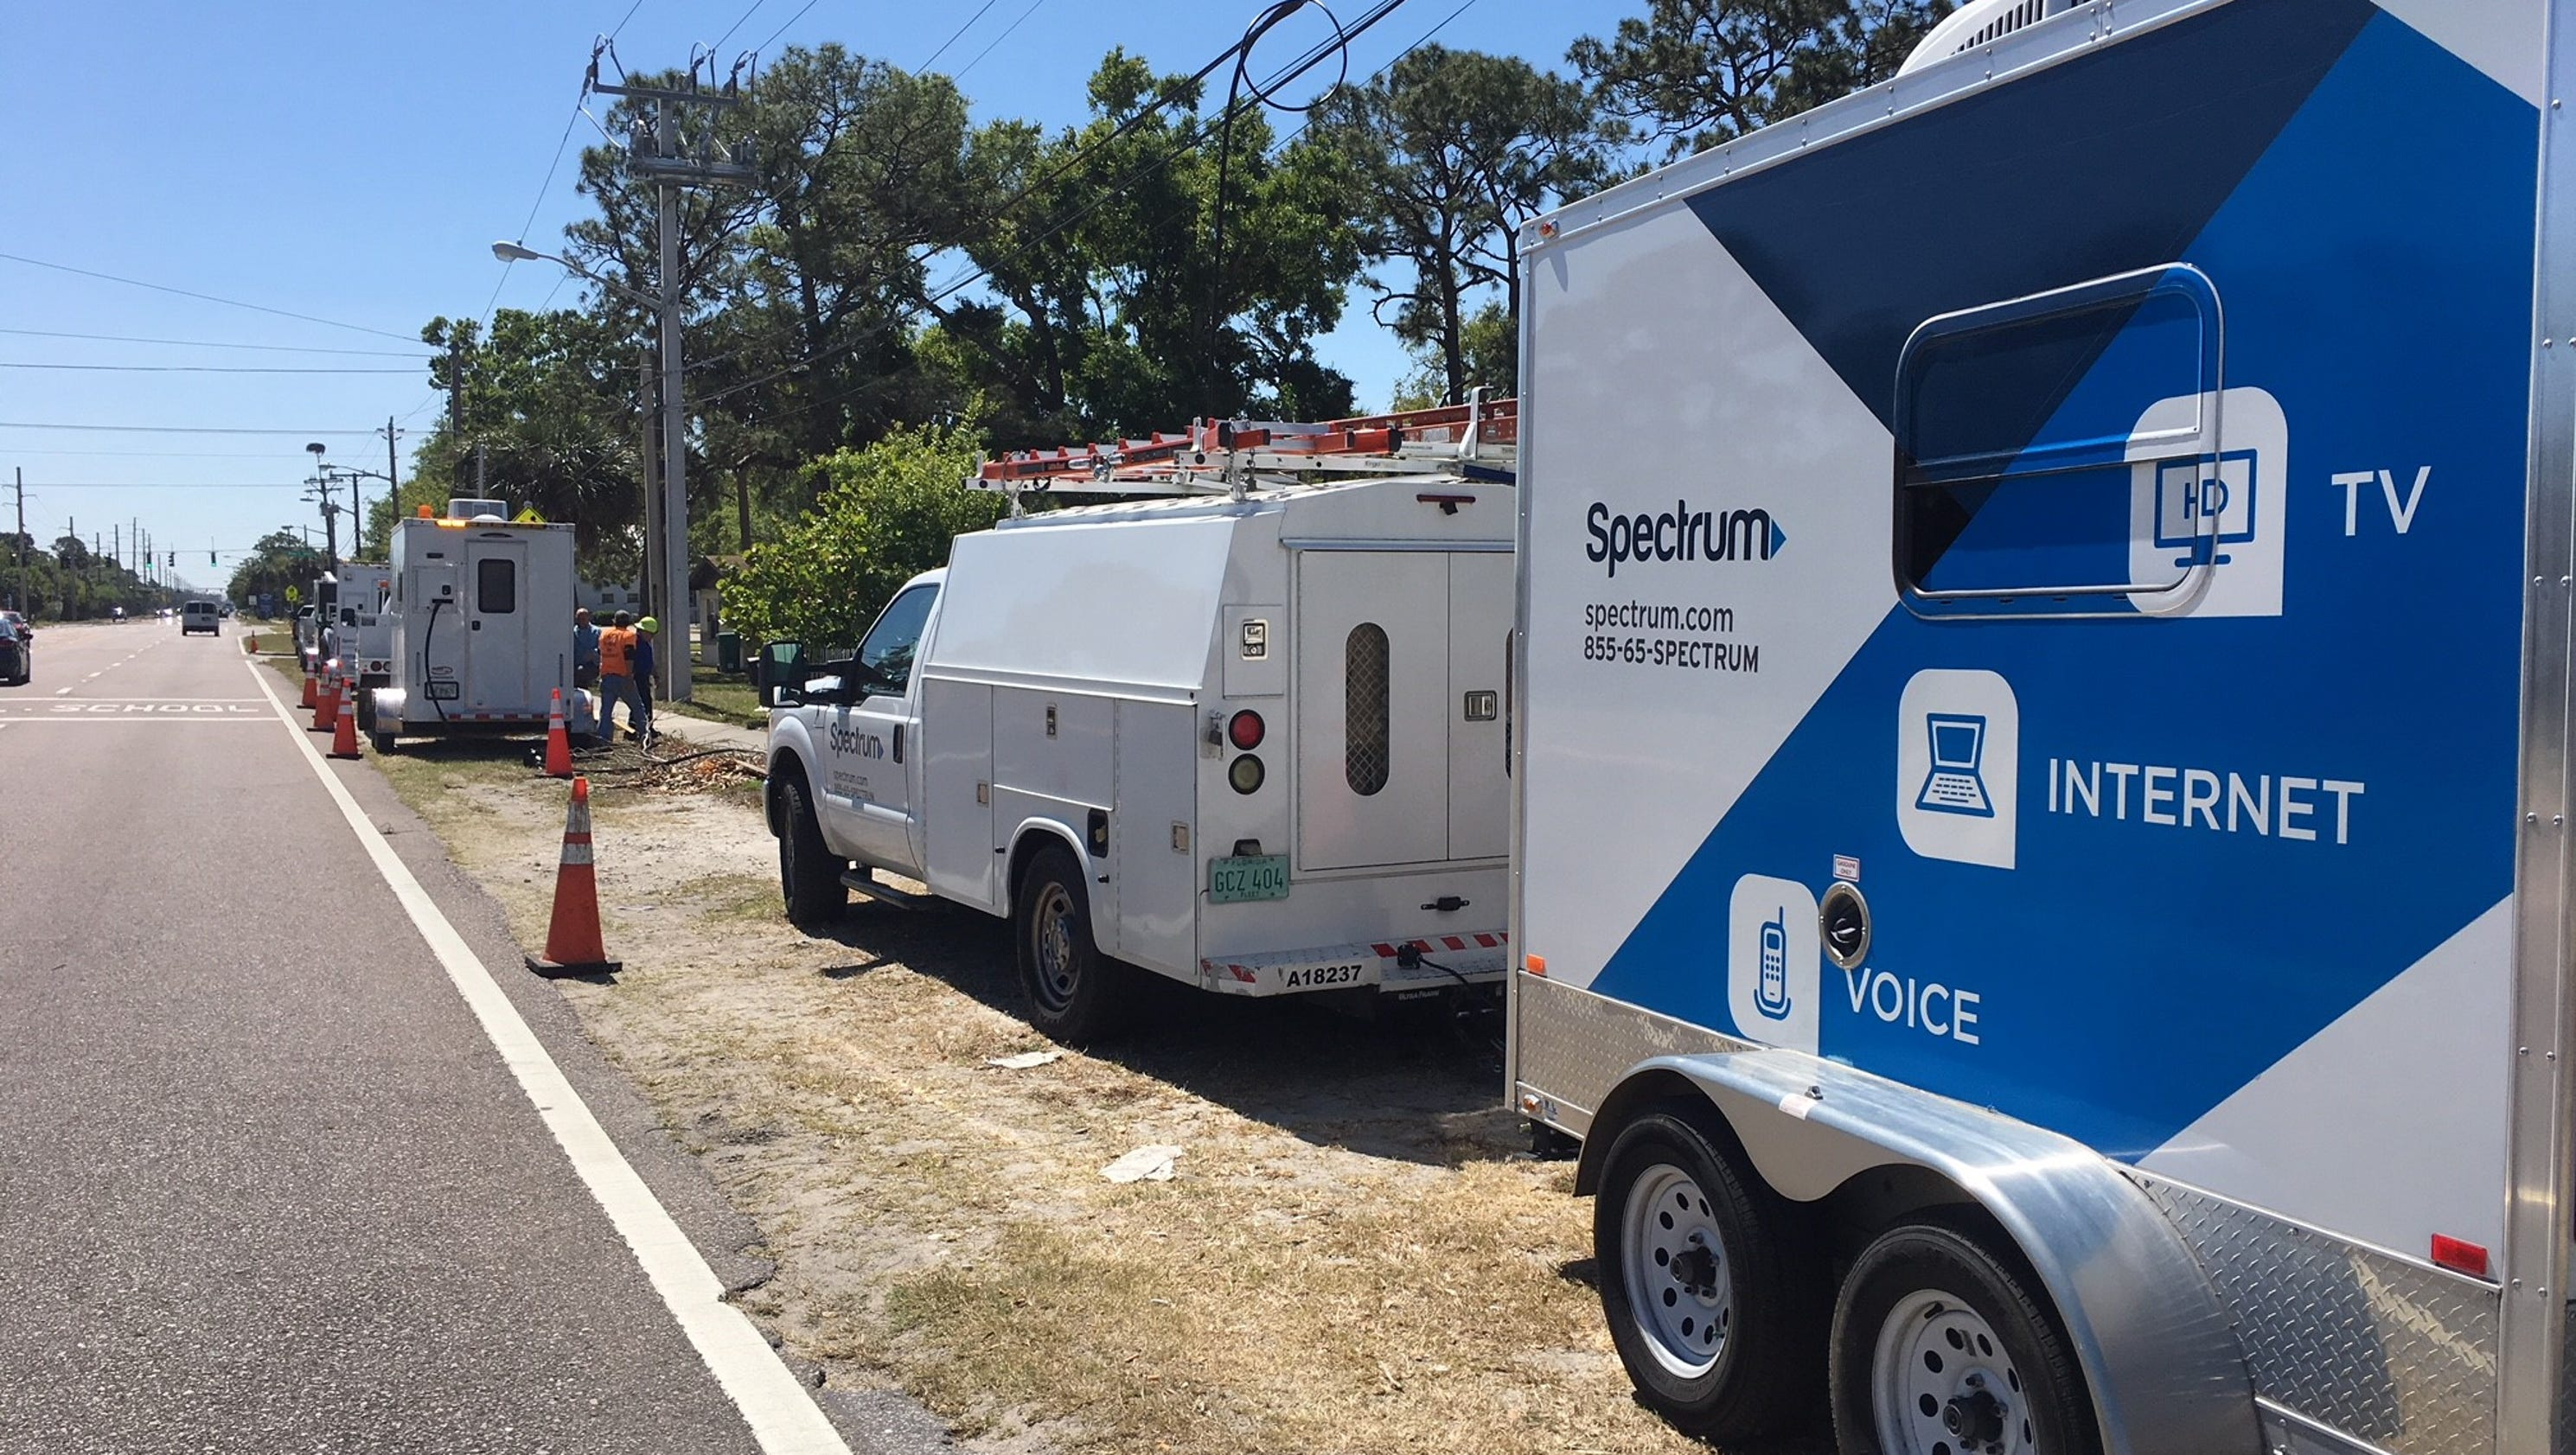 Stolen cable repair truck in Cocoa leads to Spectrum internet outage